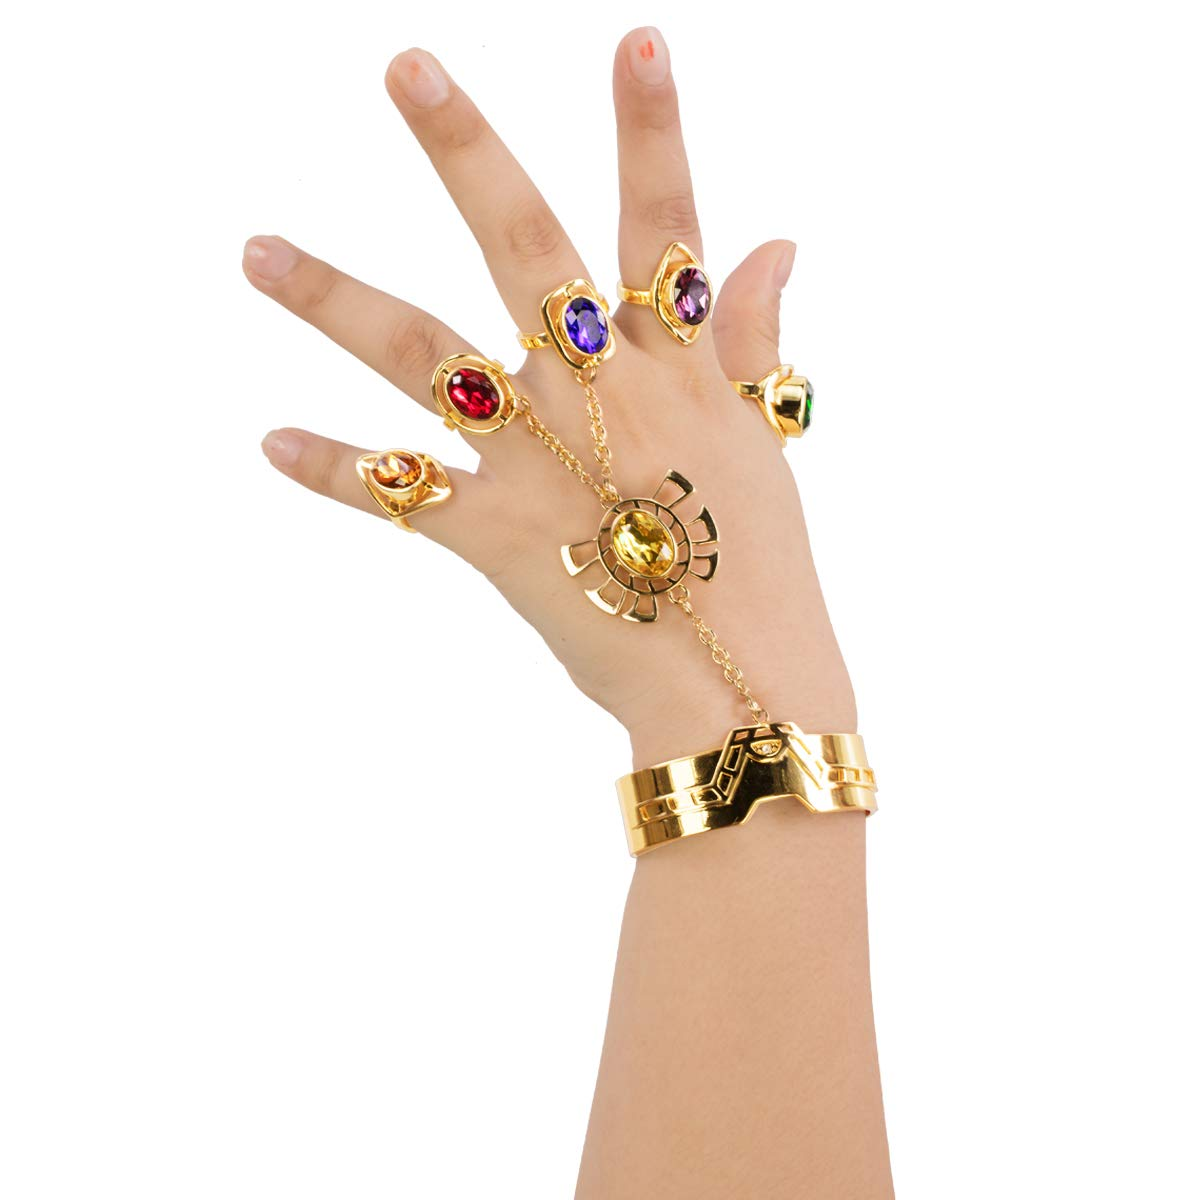 Hotwinds Infinity Bracelet, Thanos Infinity Gauntlet Bracelet for Women